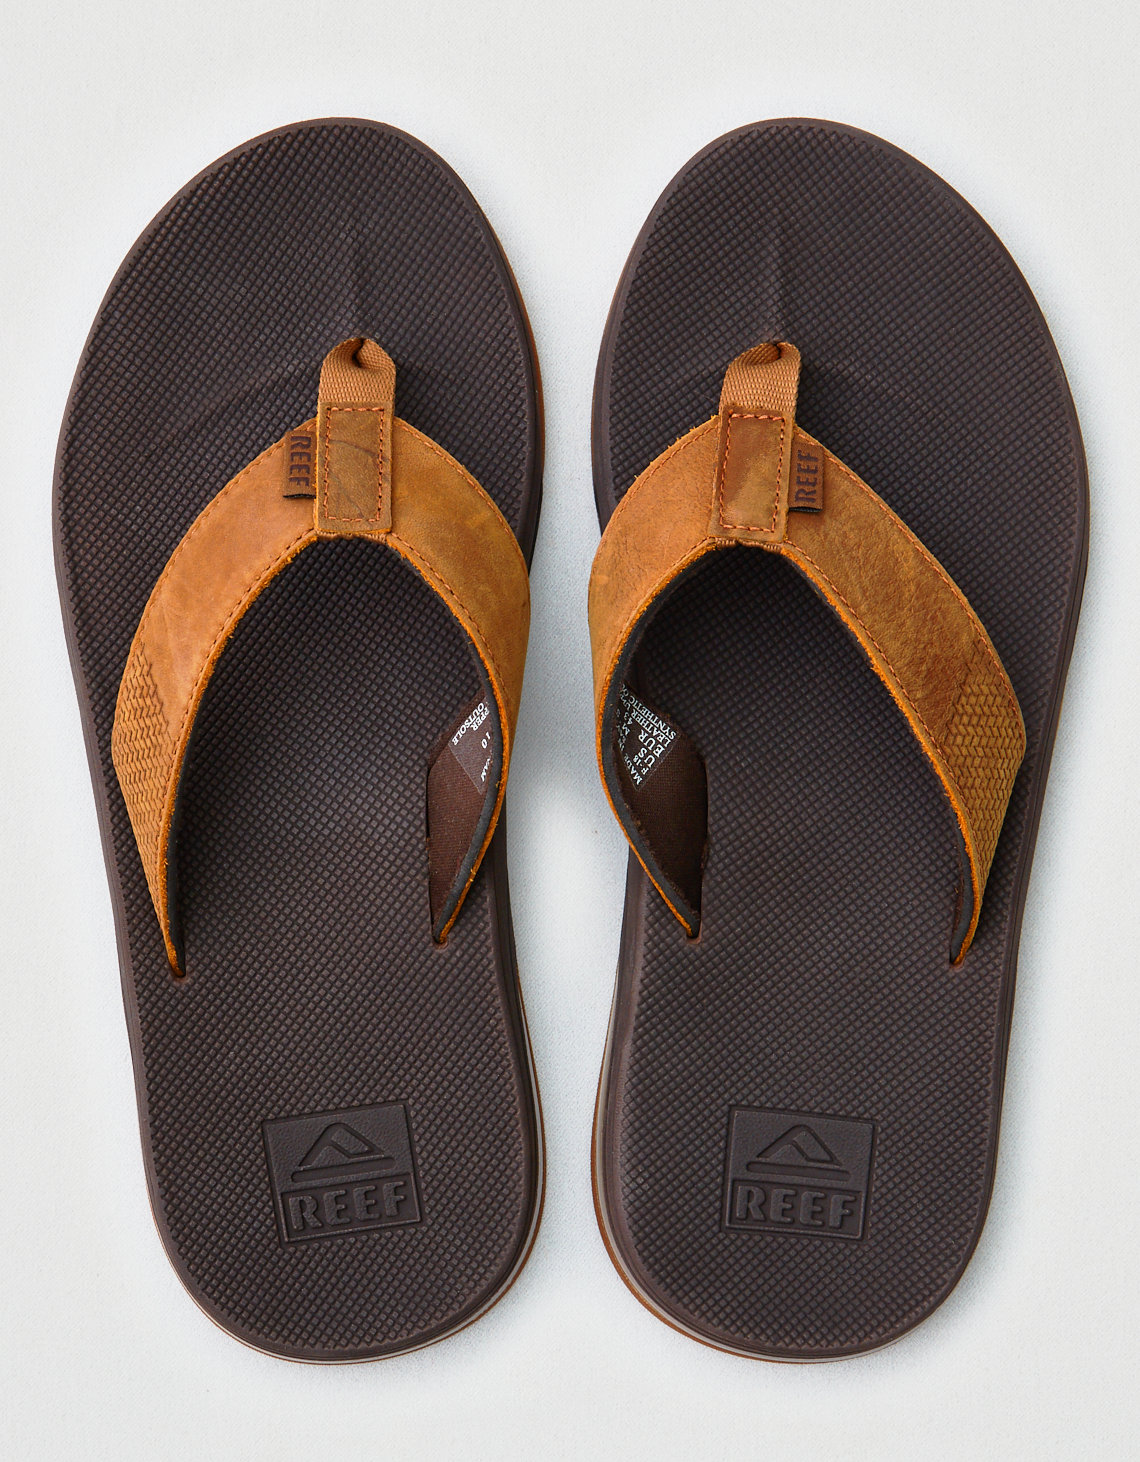 b0c91e5689af Reef Leather Fanning Low Sandal. Placeholder image. Product Image